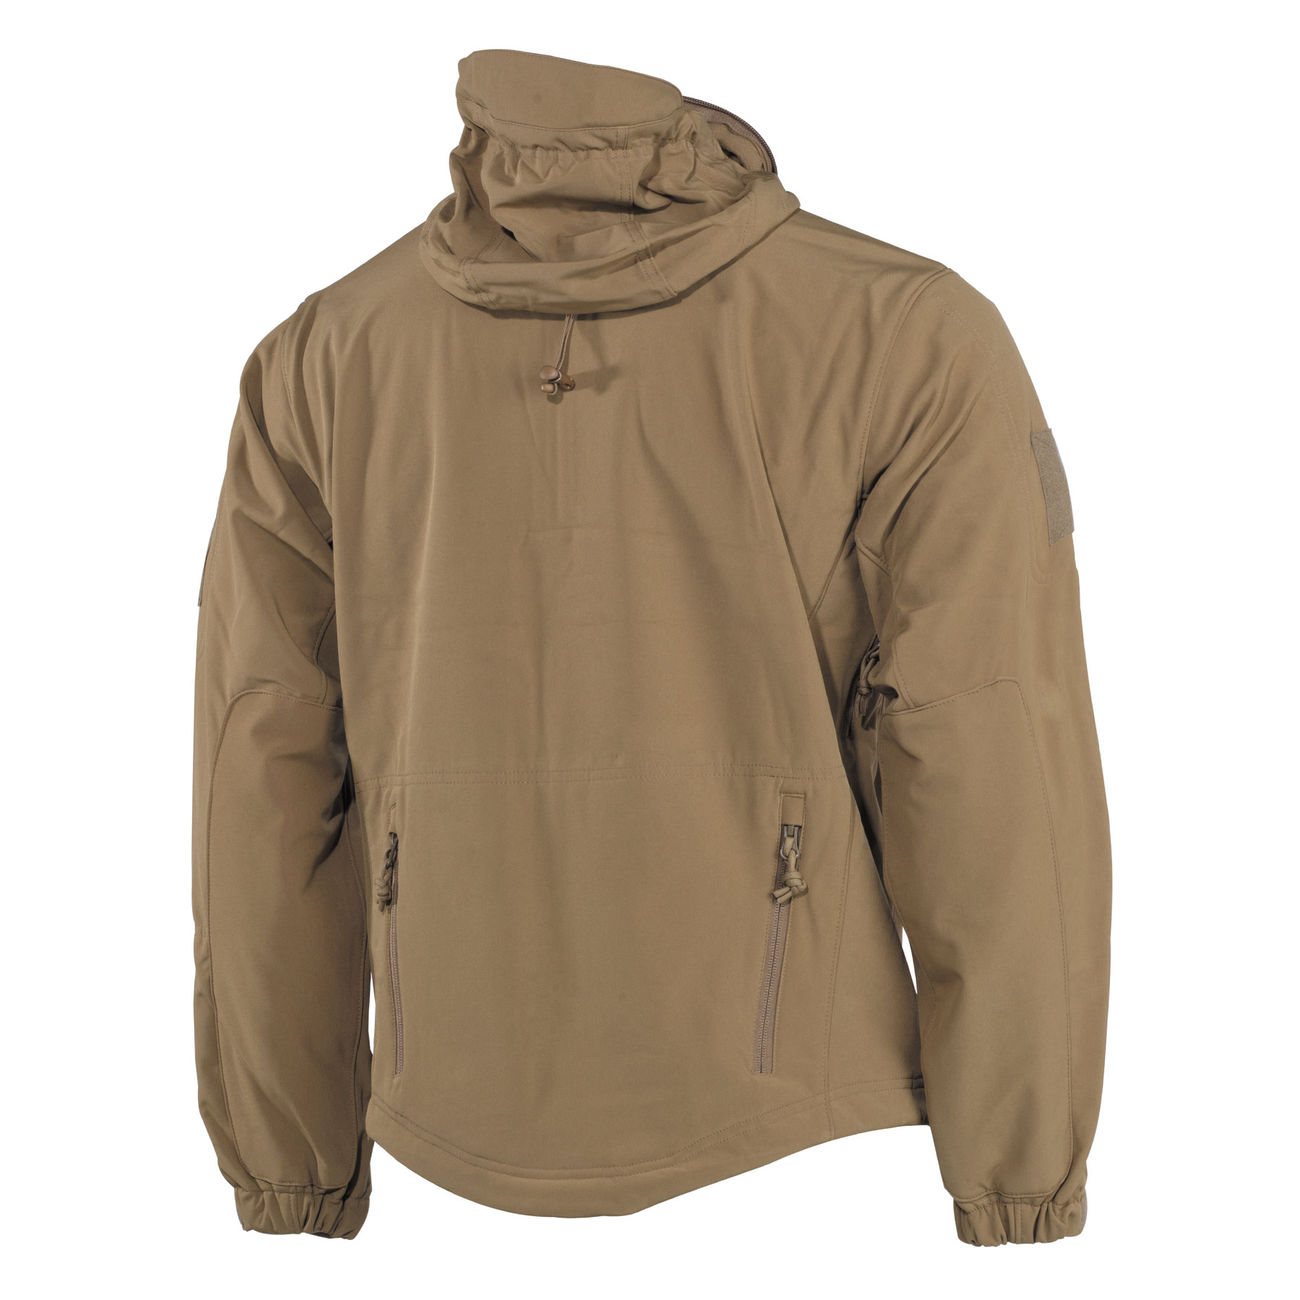 MFH Softshell Jacke Scorpion coyote 1